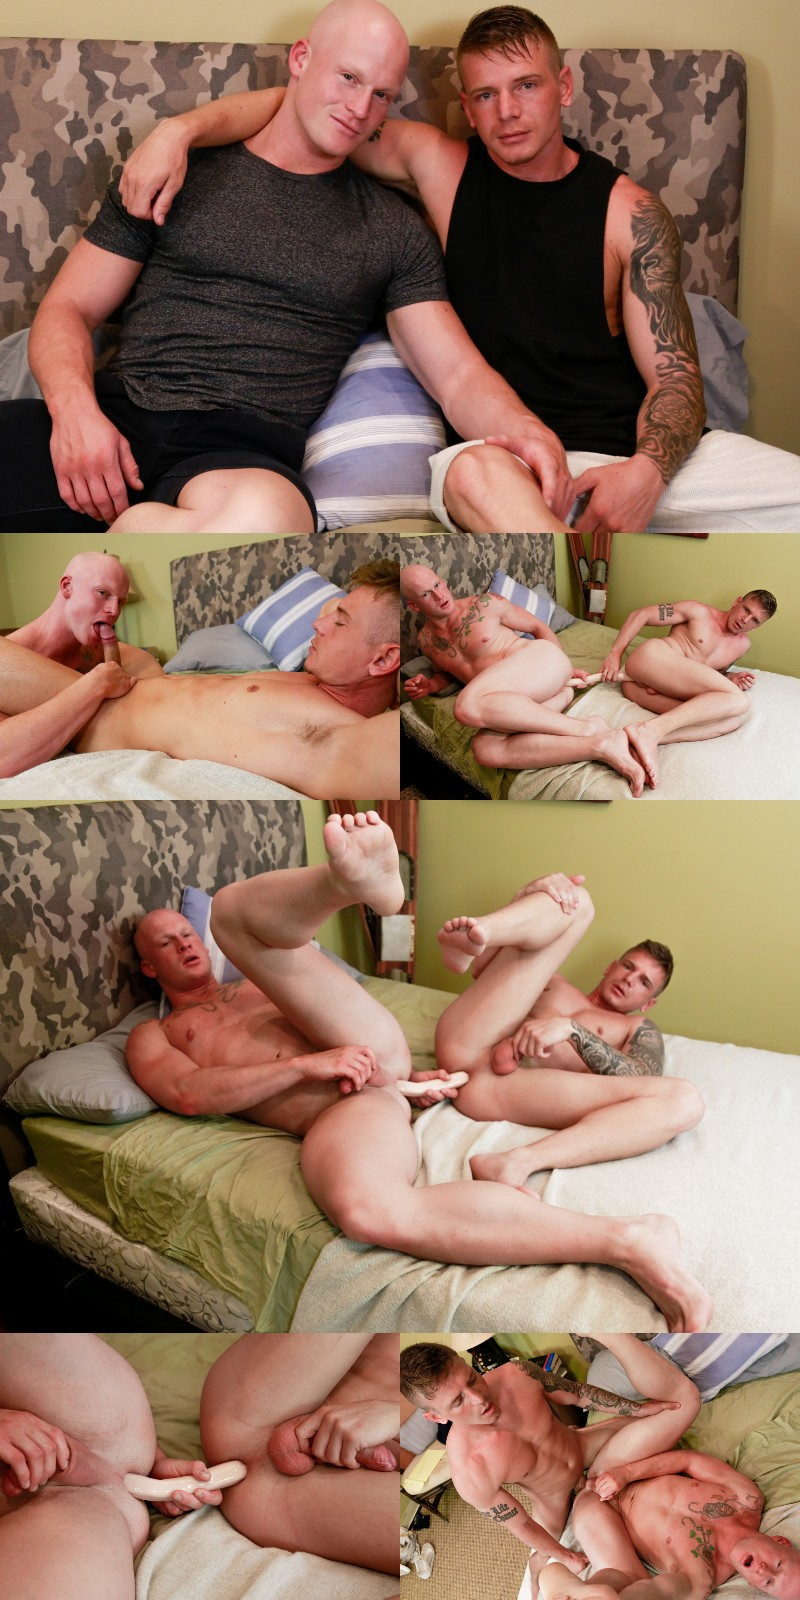 Roman Eros & Gunner Canon Share a Double-Headed Dildo